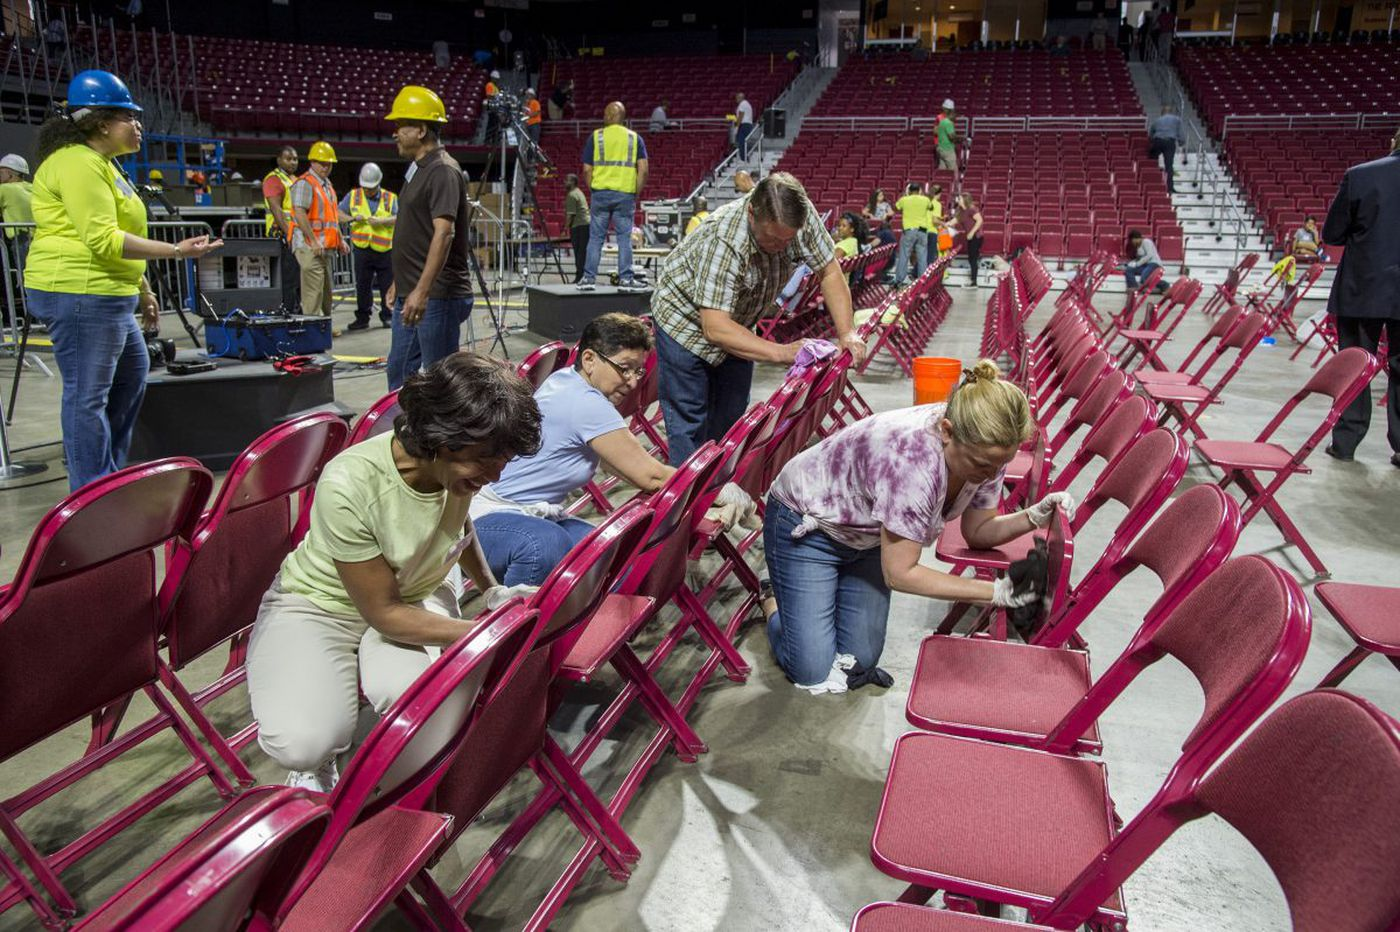 Cleanliness next to godliness as Jehovah's Witnesses scrub Liacouras Center